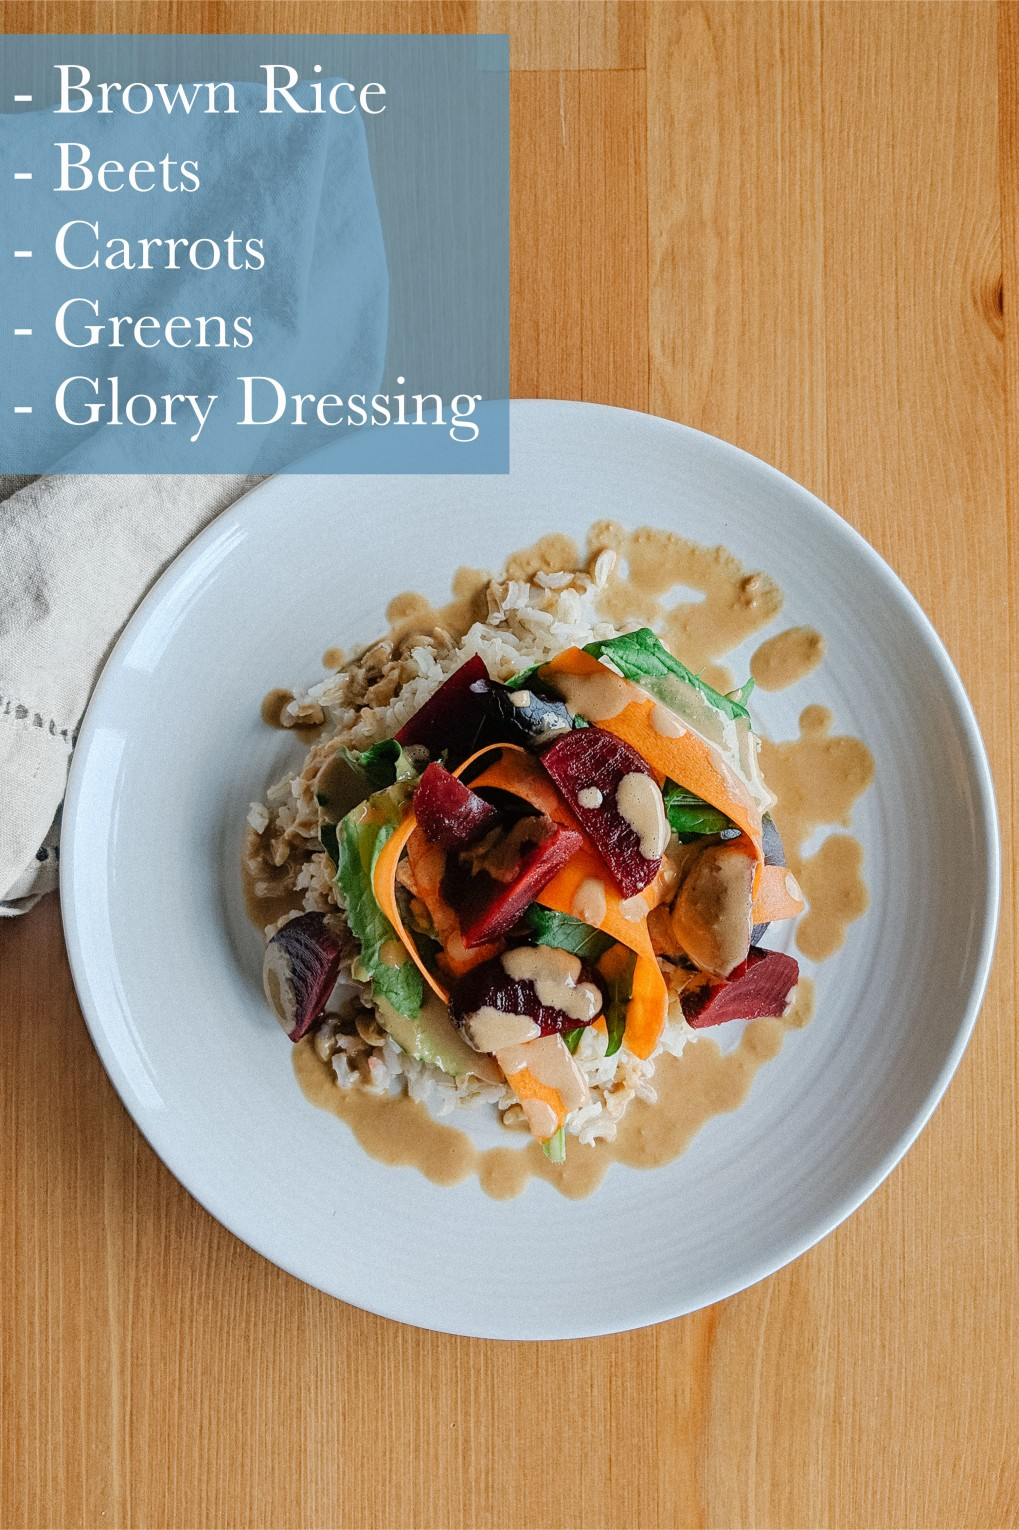 Winter Grain Salad with Glory Dressing - YUM!